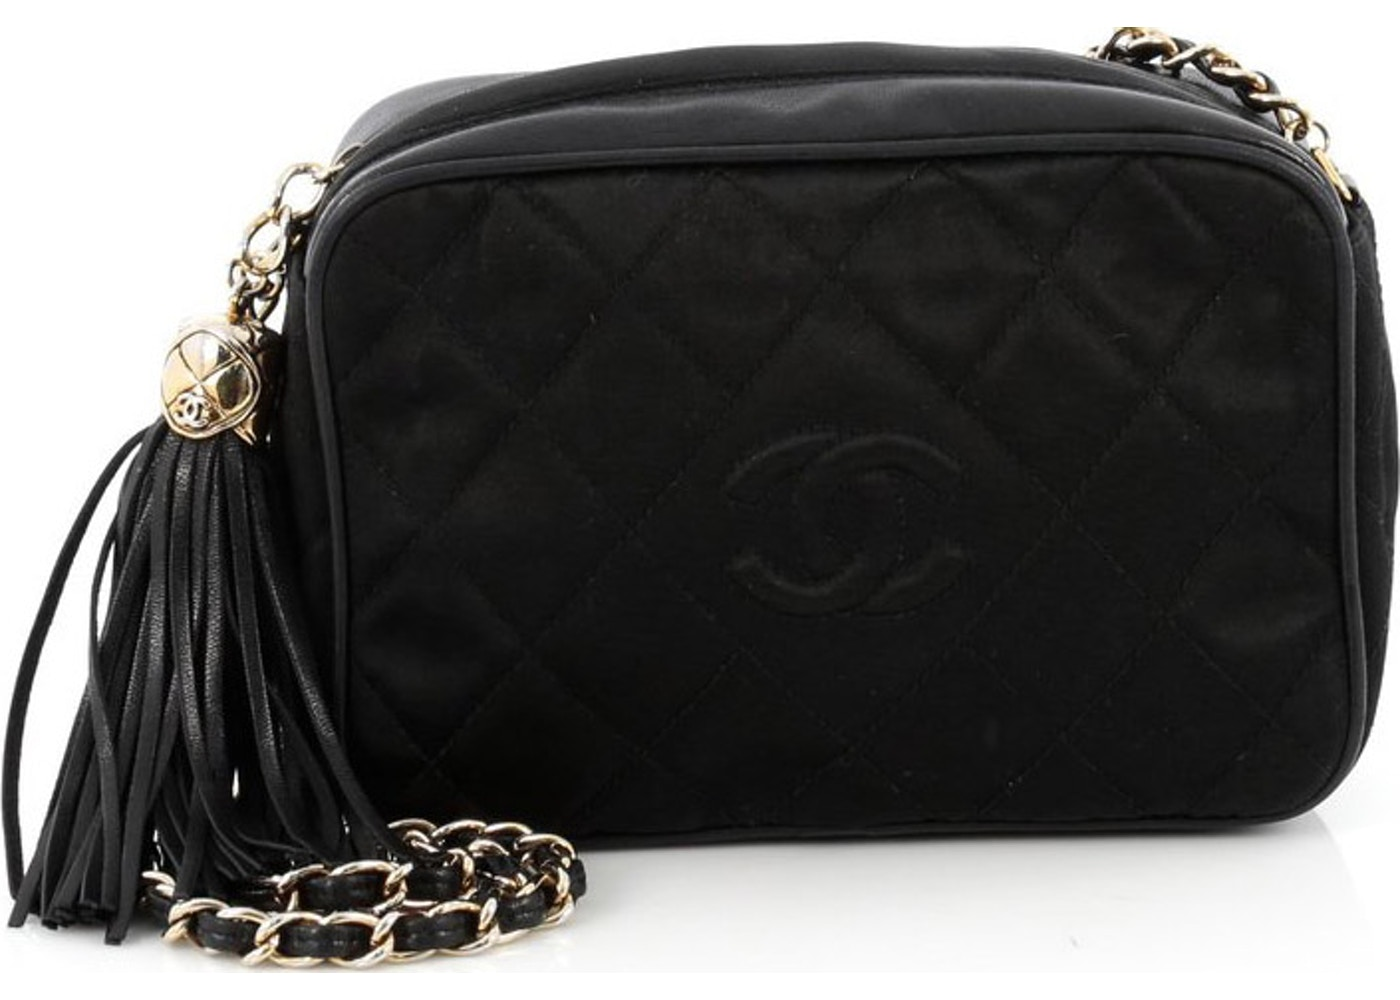 0e1c60771471a0 Chanel Vintage Satin Diamond CC Camera Bag Quilted Small Black. Quilted  Small Black